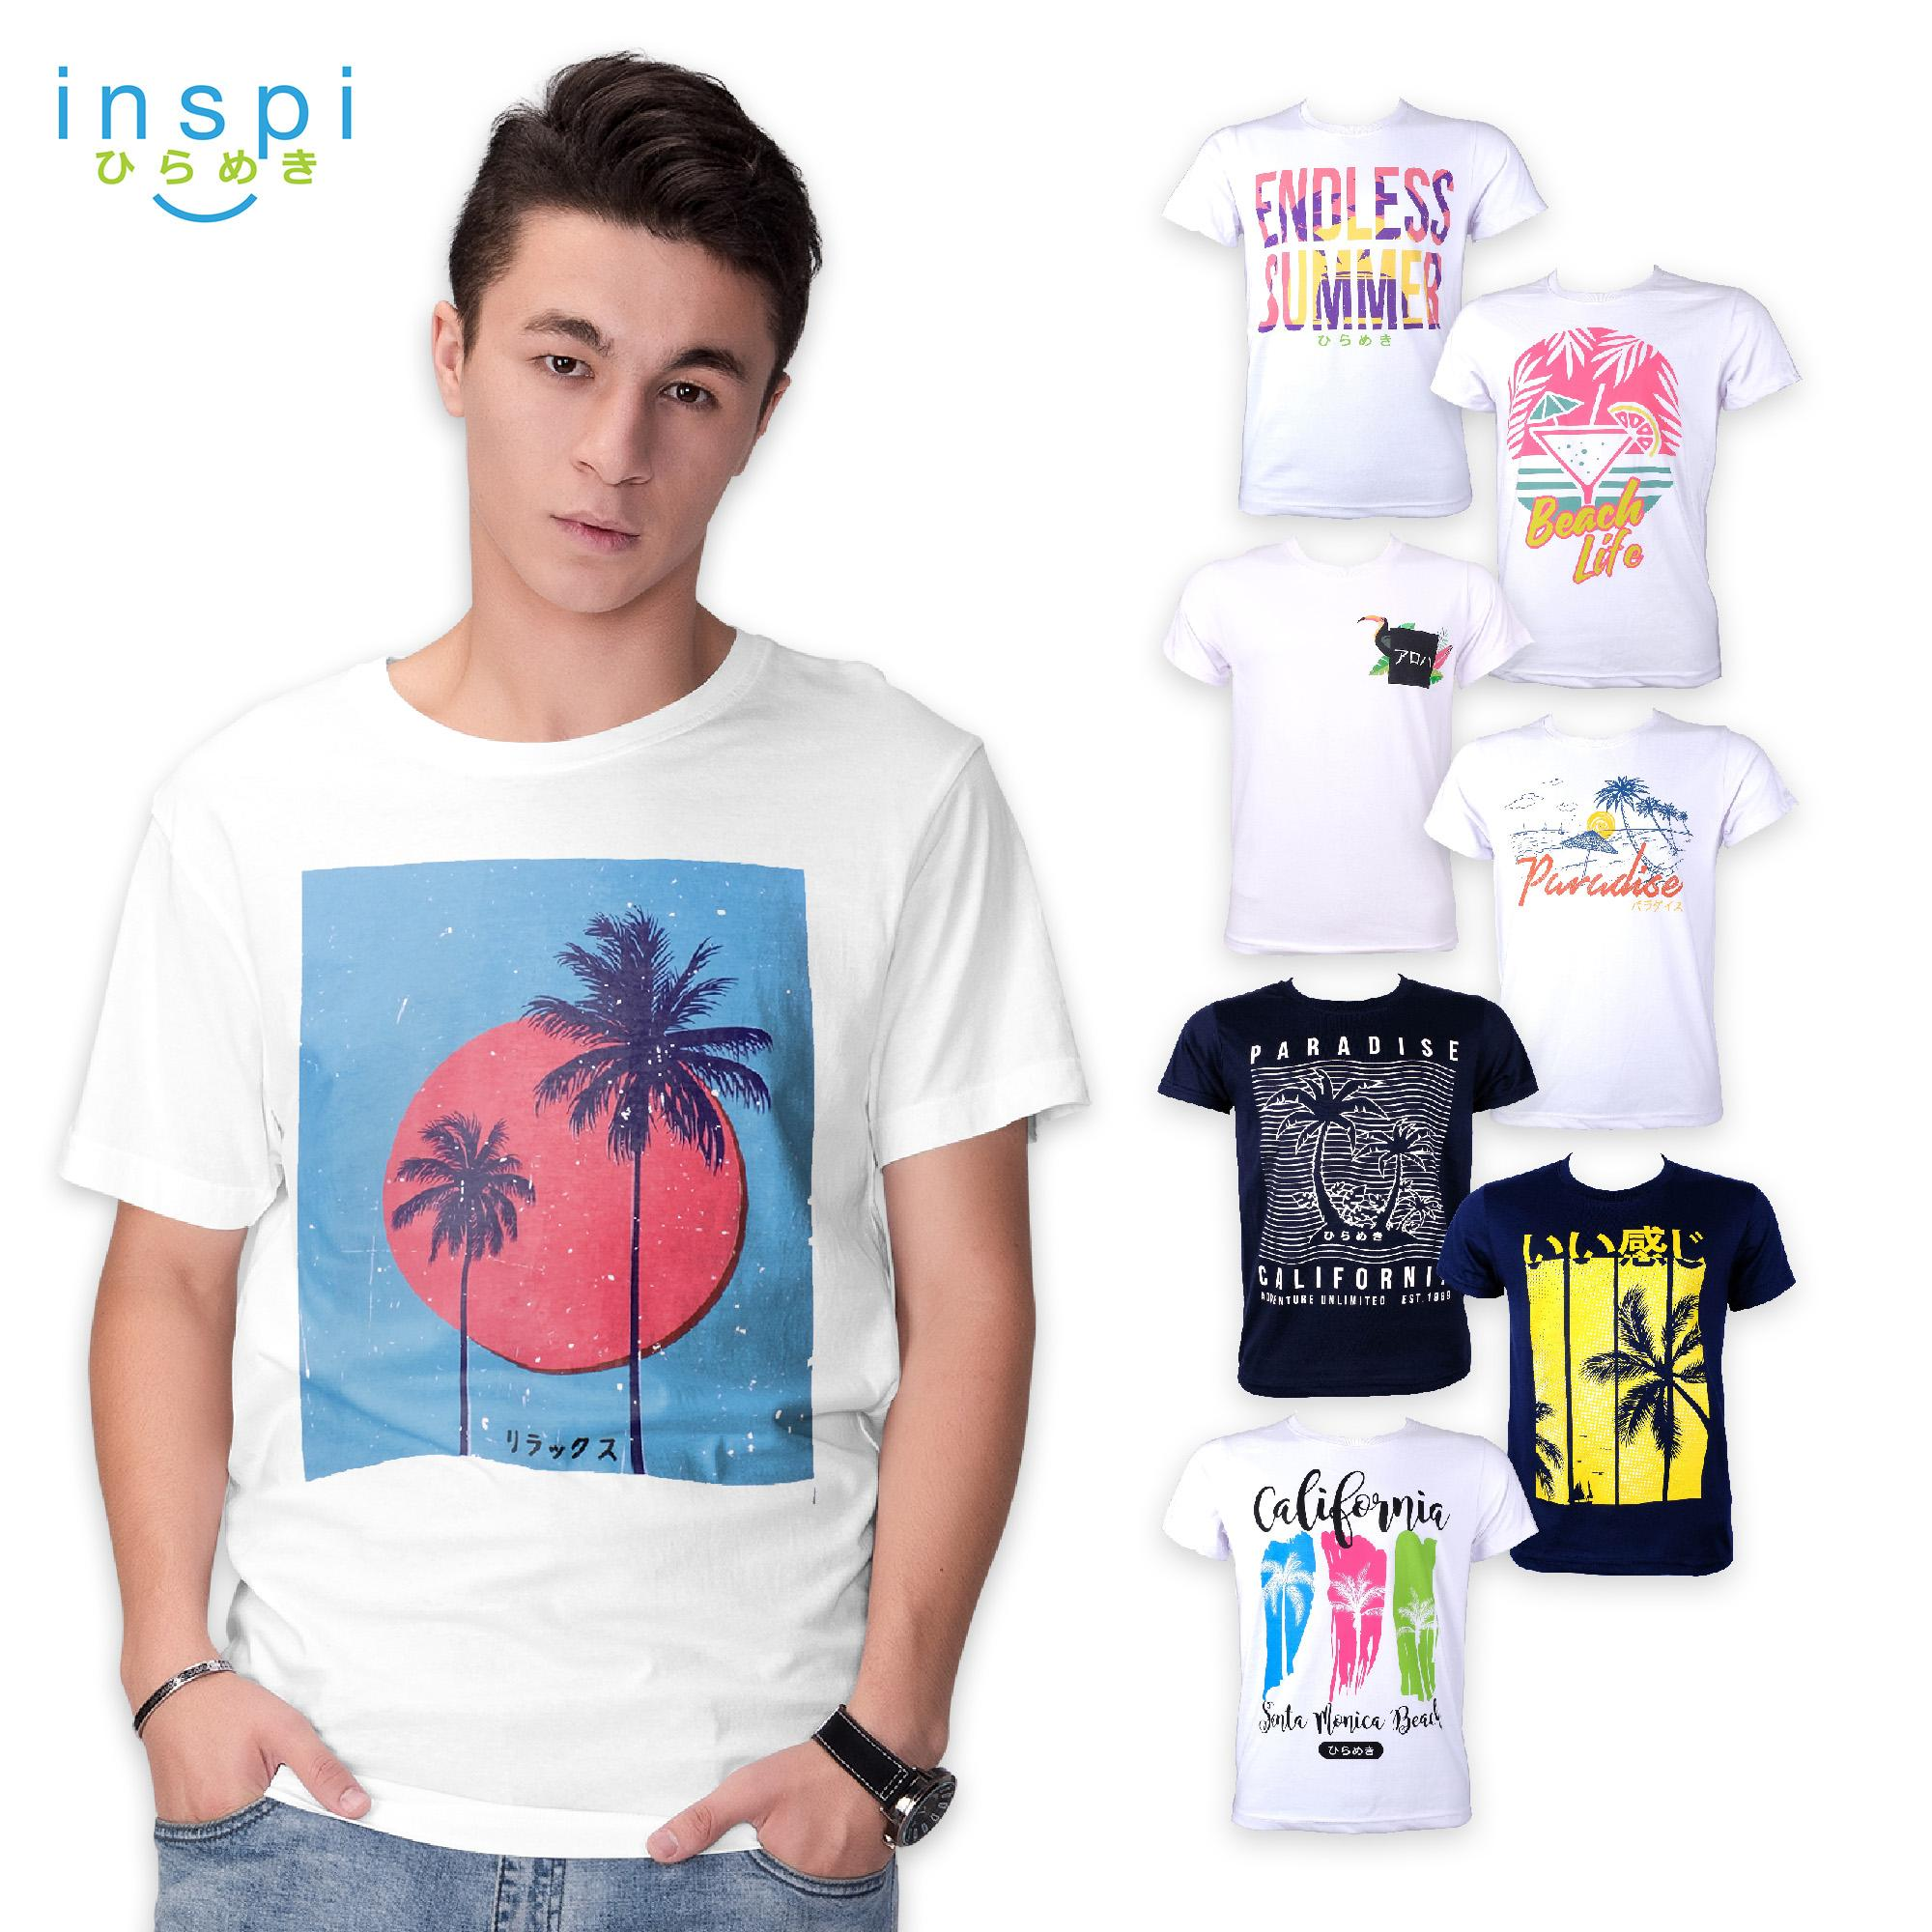 5eceb664f2a INSPI Tees Summer Collection tshirt printed graphic tee Mens t shirt shirts  for men tshirts sale